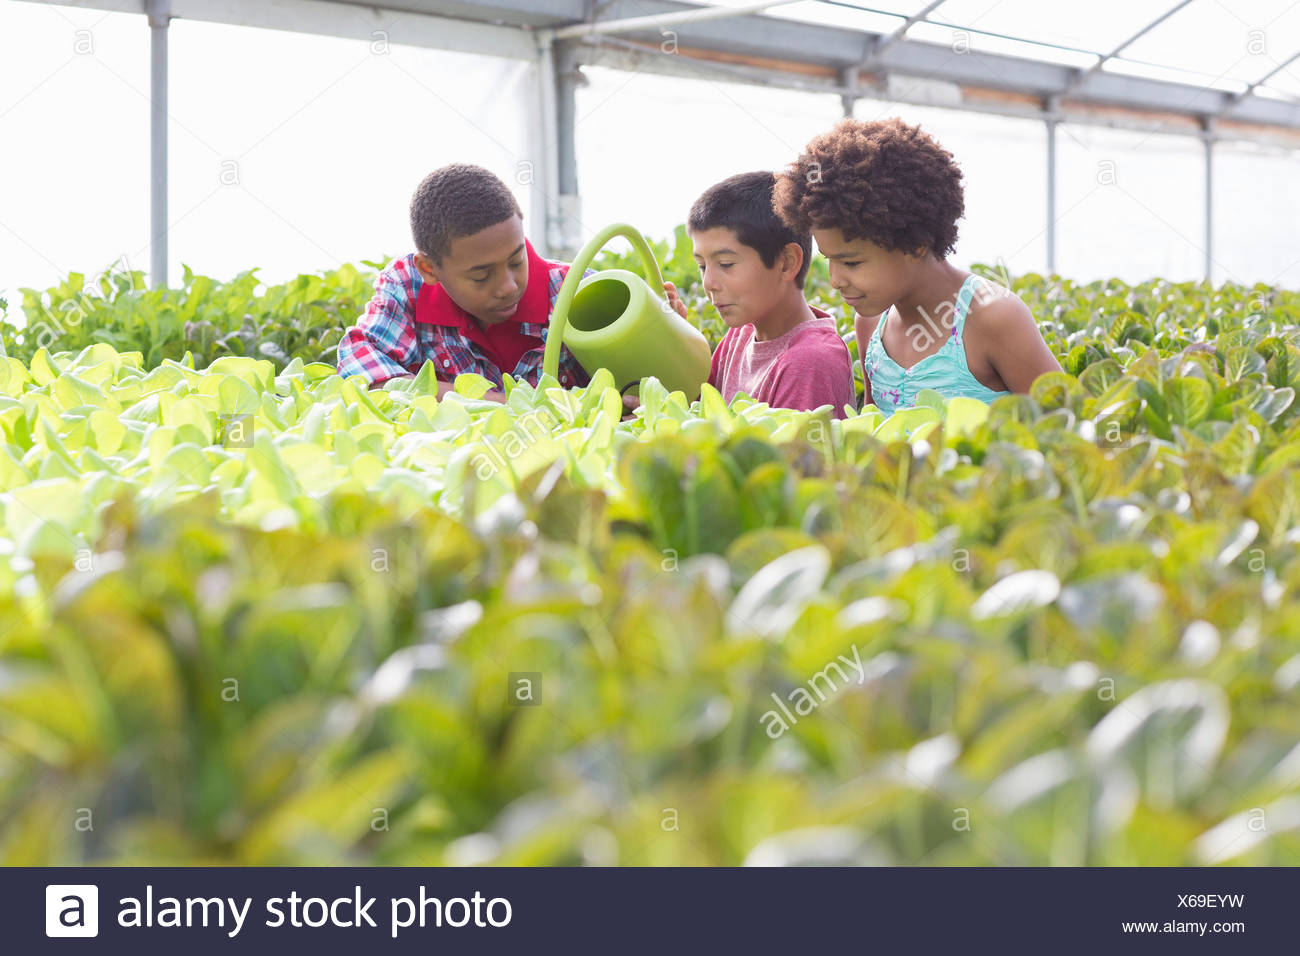 Three children watering plants in greenhouse - Stock Image